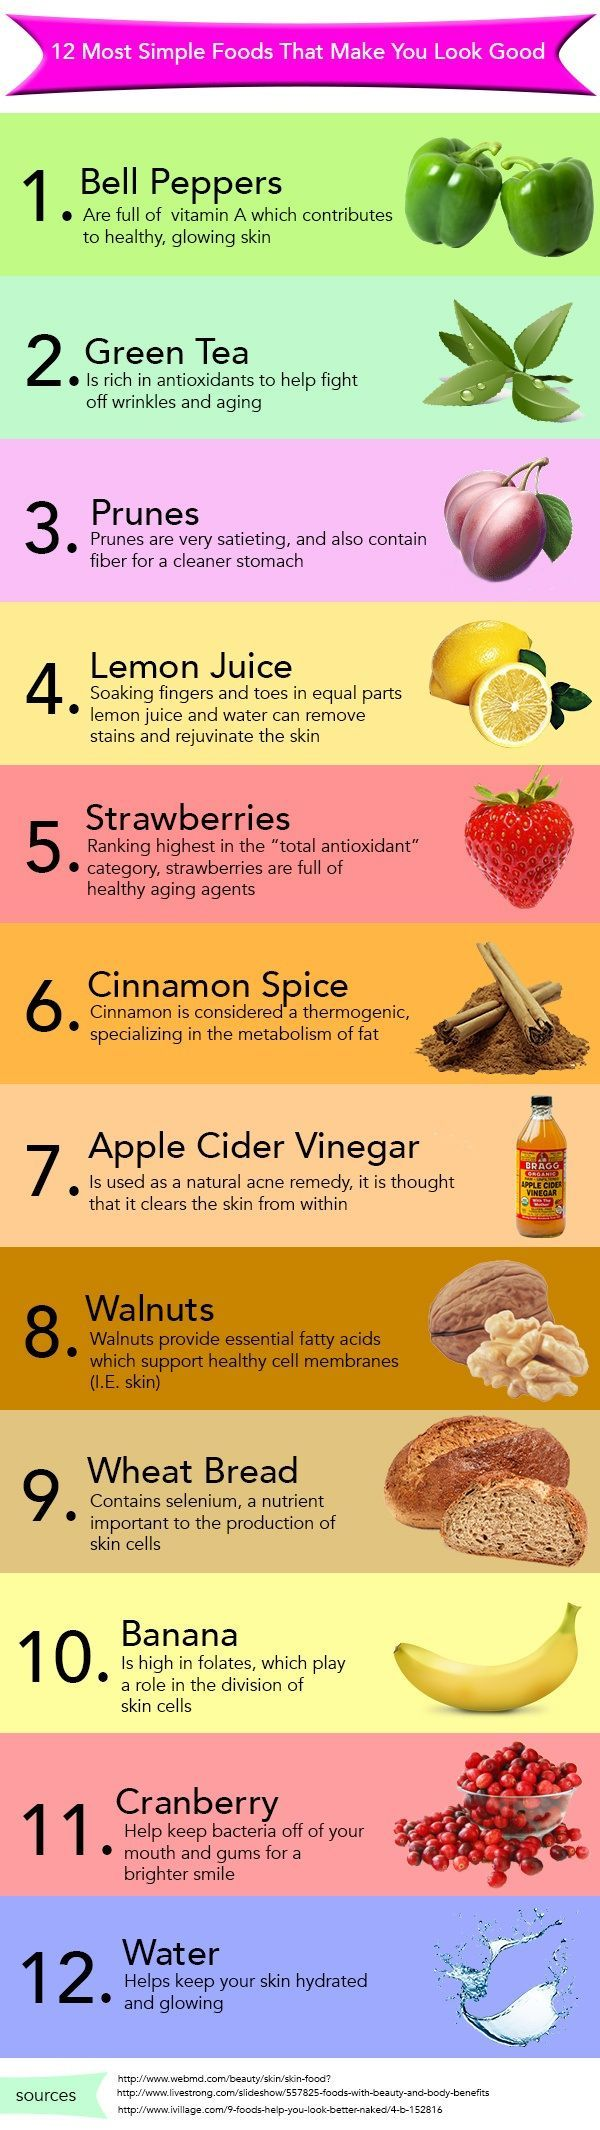 12 Most Simple Foods That Make You Look Good ♥️ #beauty #foods